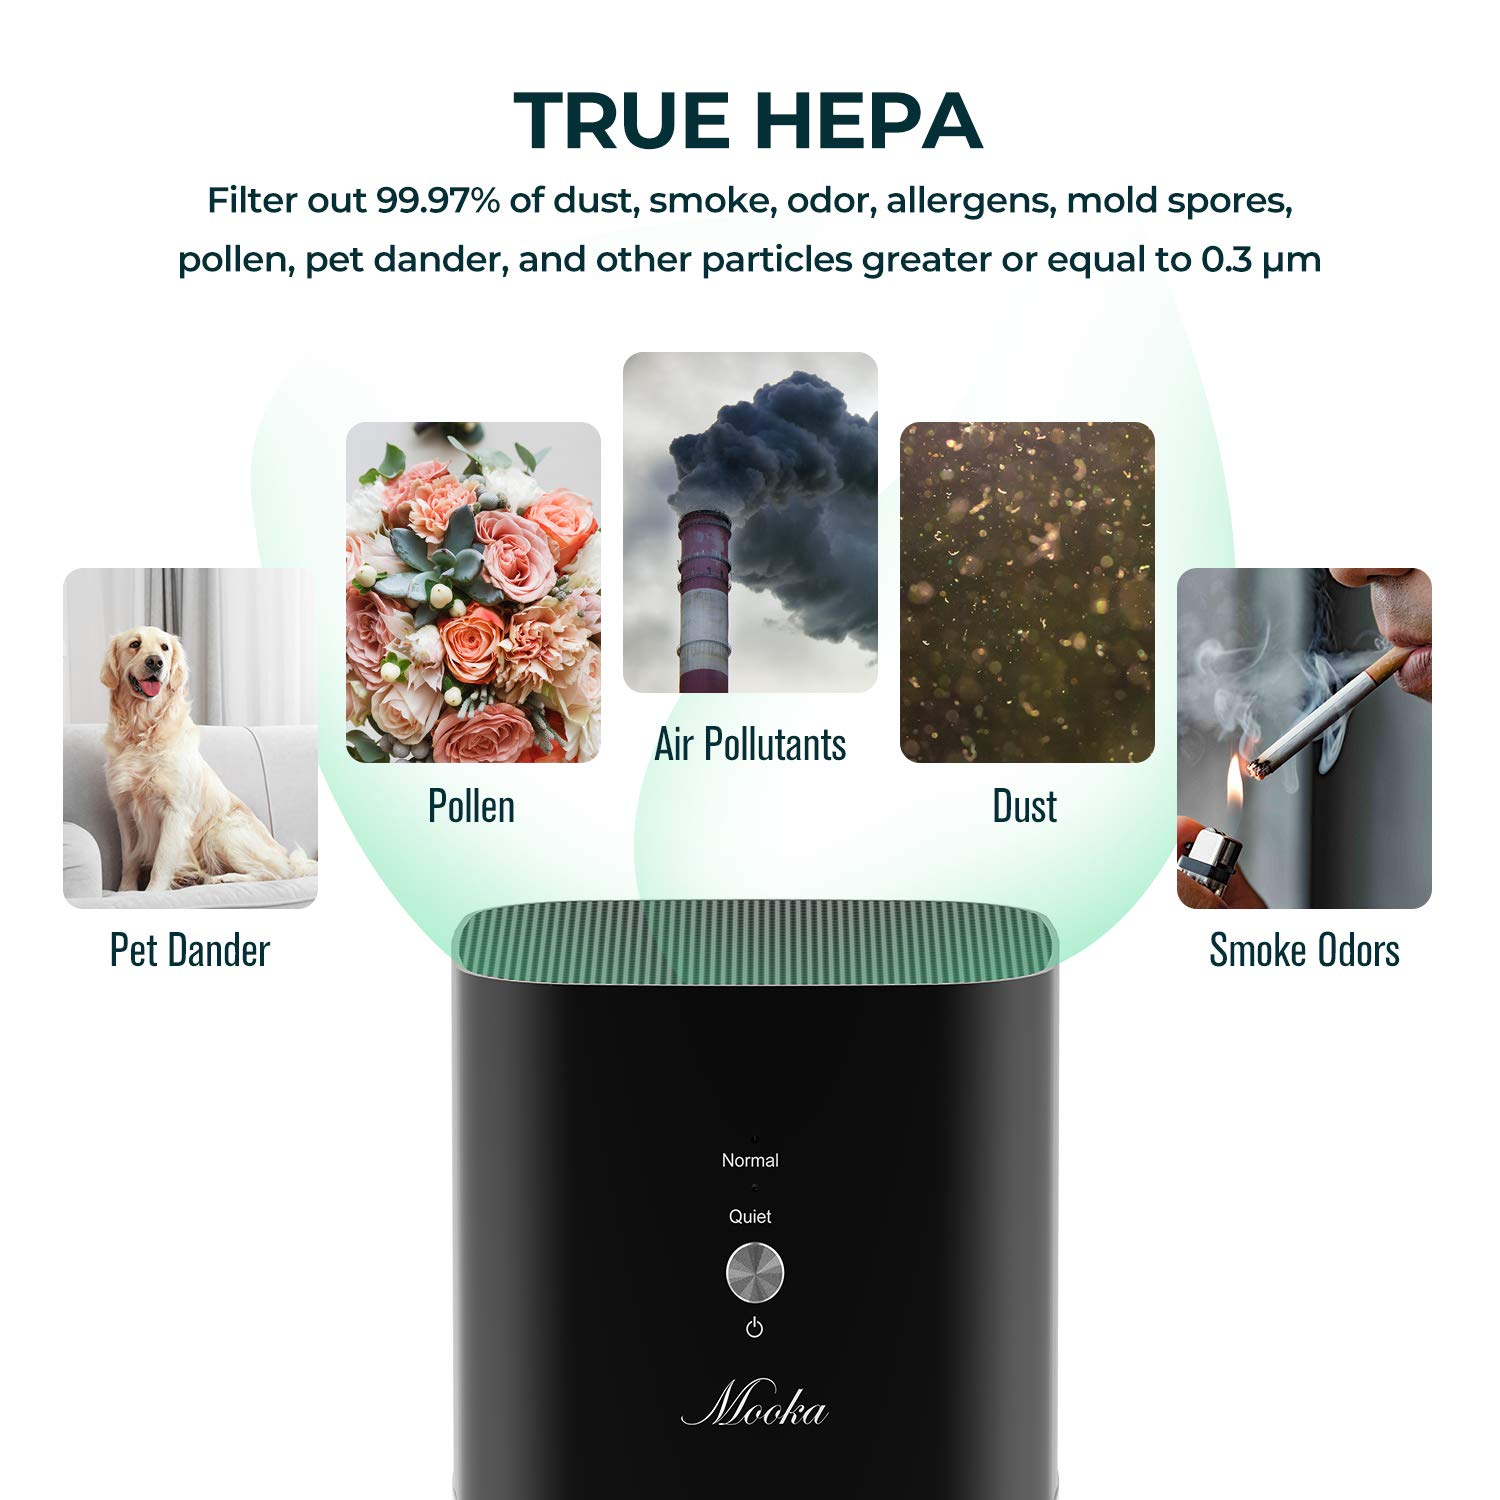 Mooka Air Purifier for Home, True HEPA Filter 3-Stage Filtration, Desktop Air Cleaner for Allergies and Pets, Smokers, Odor Eliminator for Dorm, Bedroom, Office, Personal Air Purifiers Portable